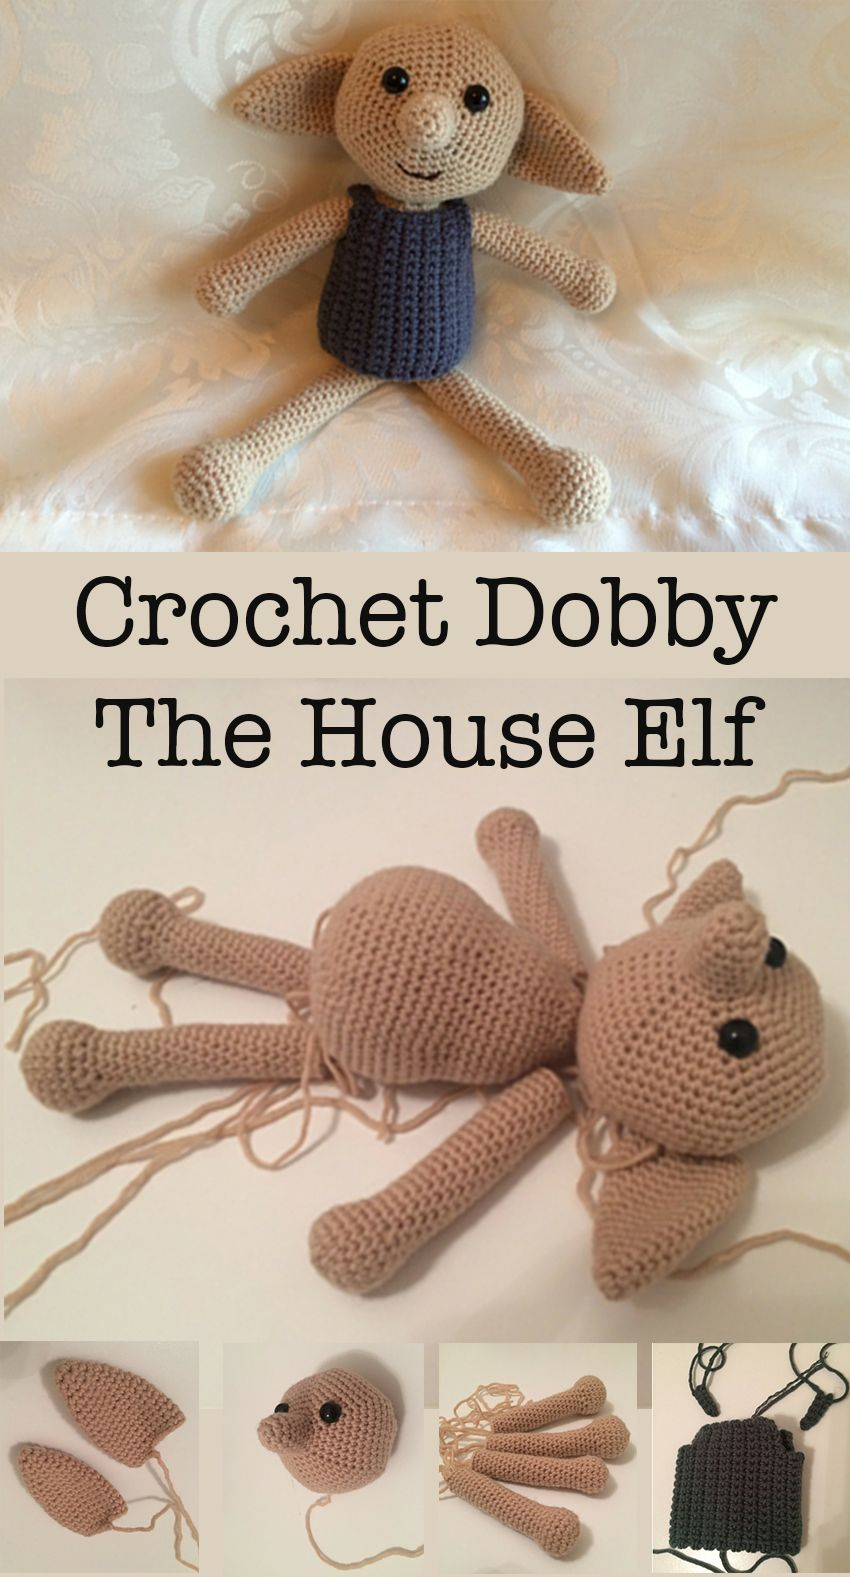 Crochet Dobby: Make Your Own Dobby The House Elf Toy - Lucy Kate Crochet #stuffedtoyspatterns